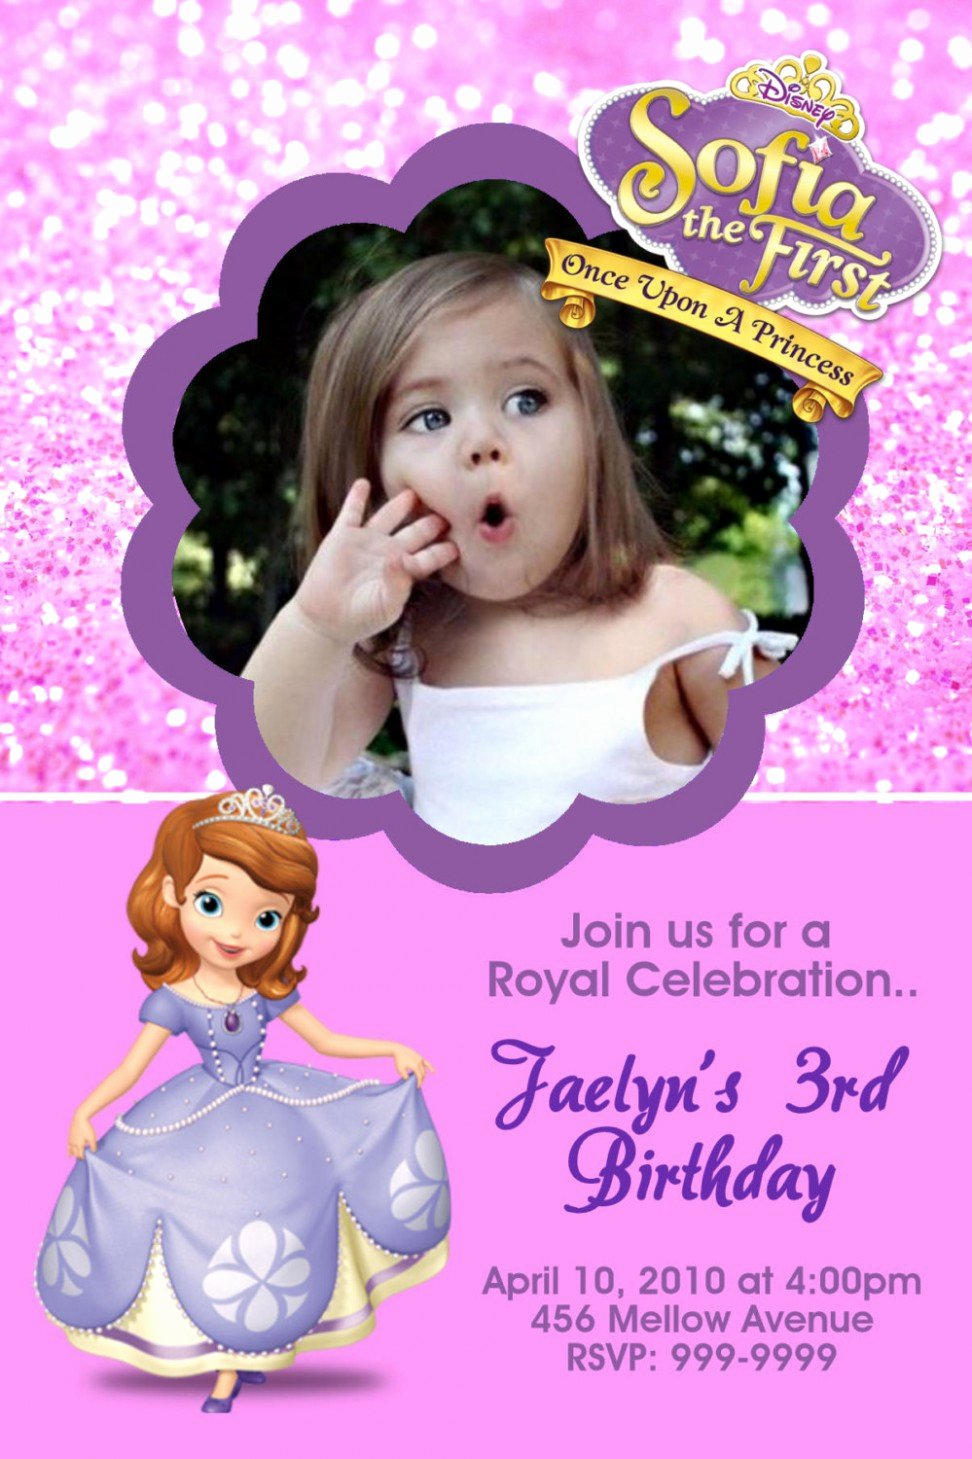 Sofia the First Template Lovely Birthday Invitation Templates sofia the First Birthday